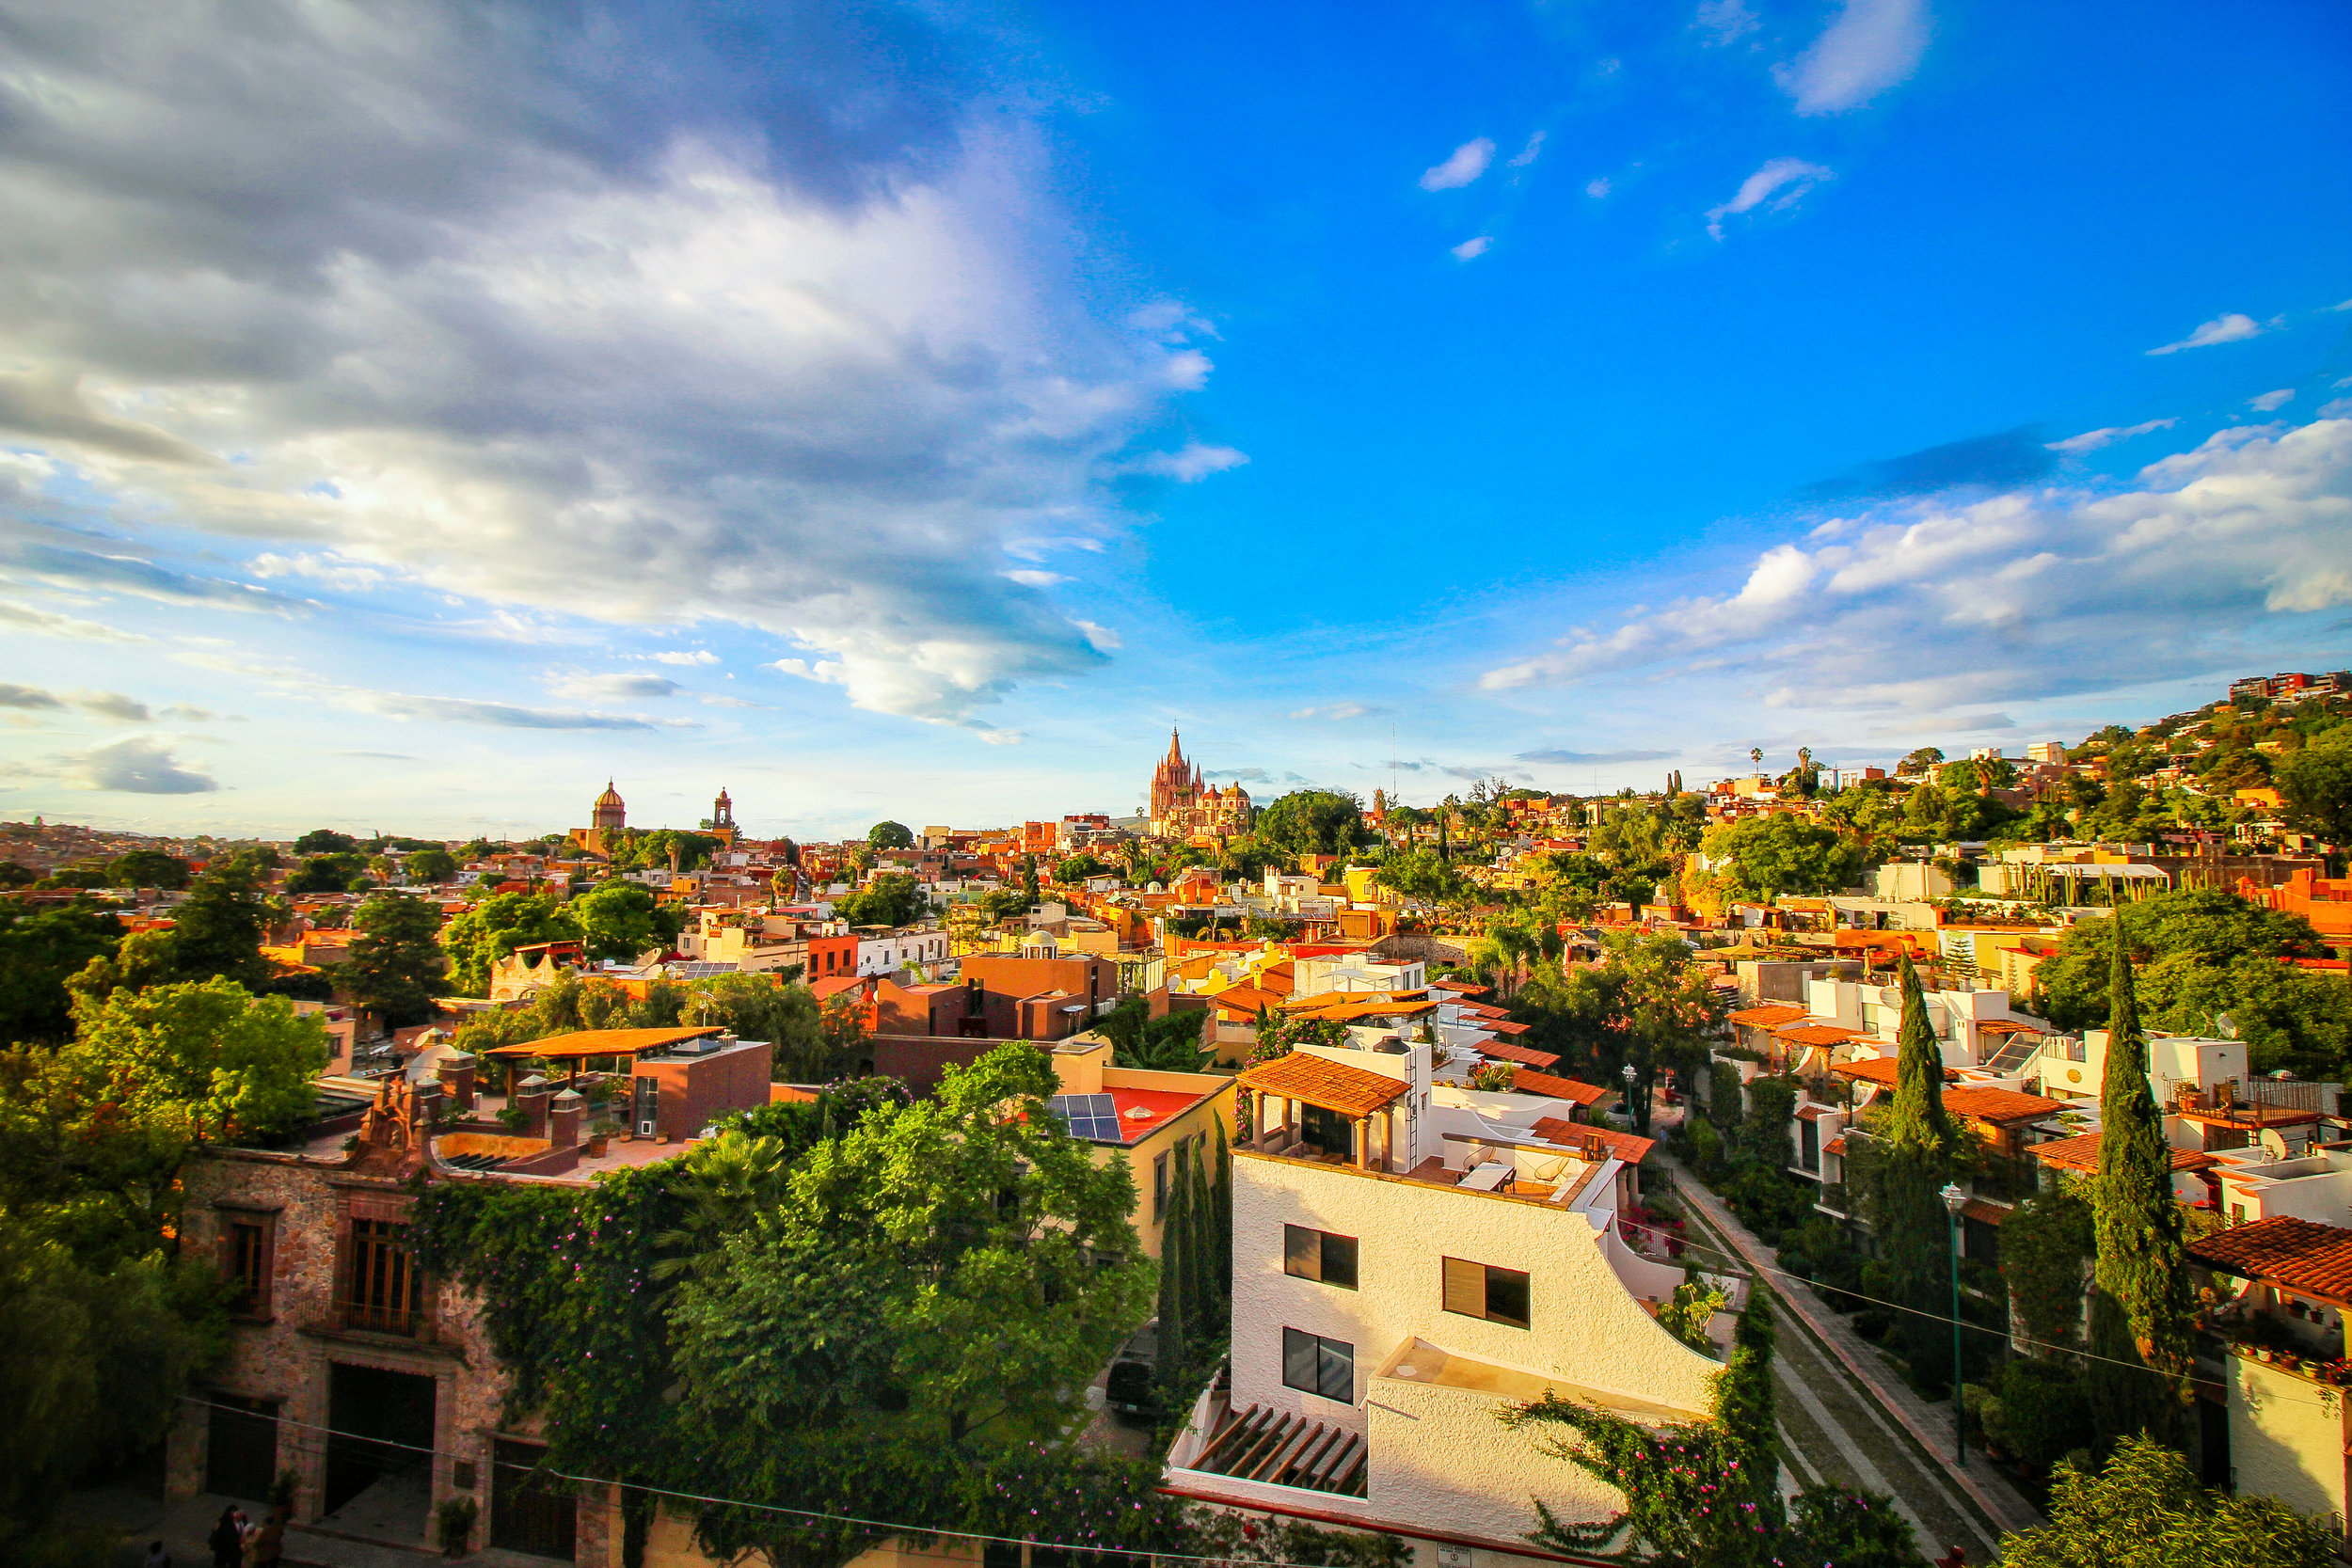 The view San Miguel de Allende from the Rosewood hotel